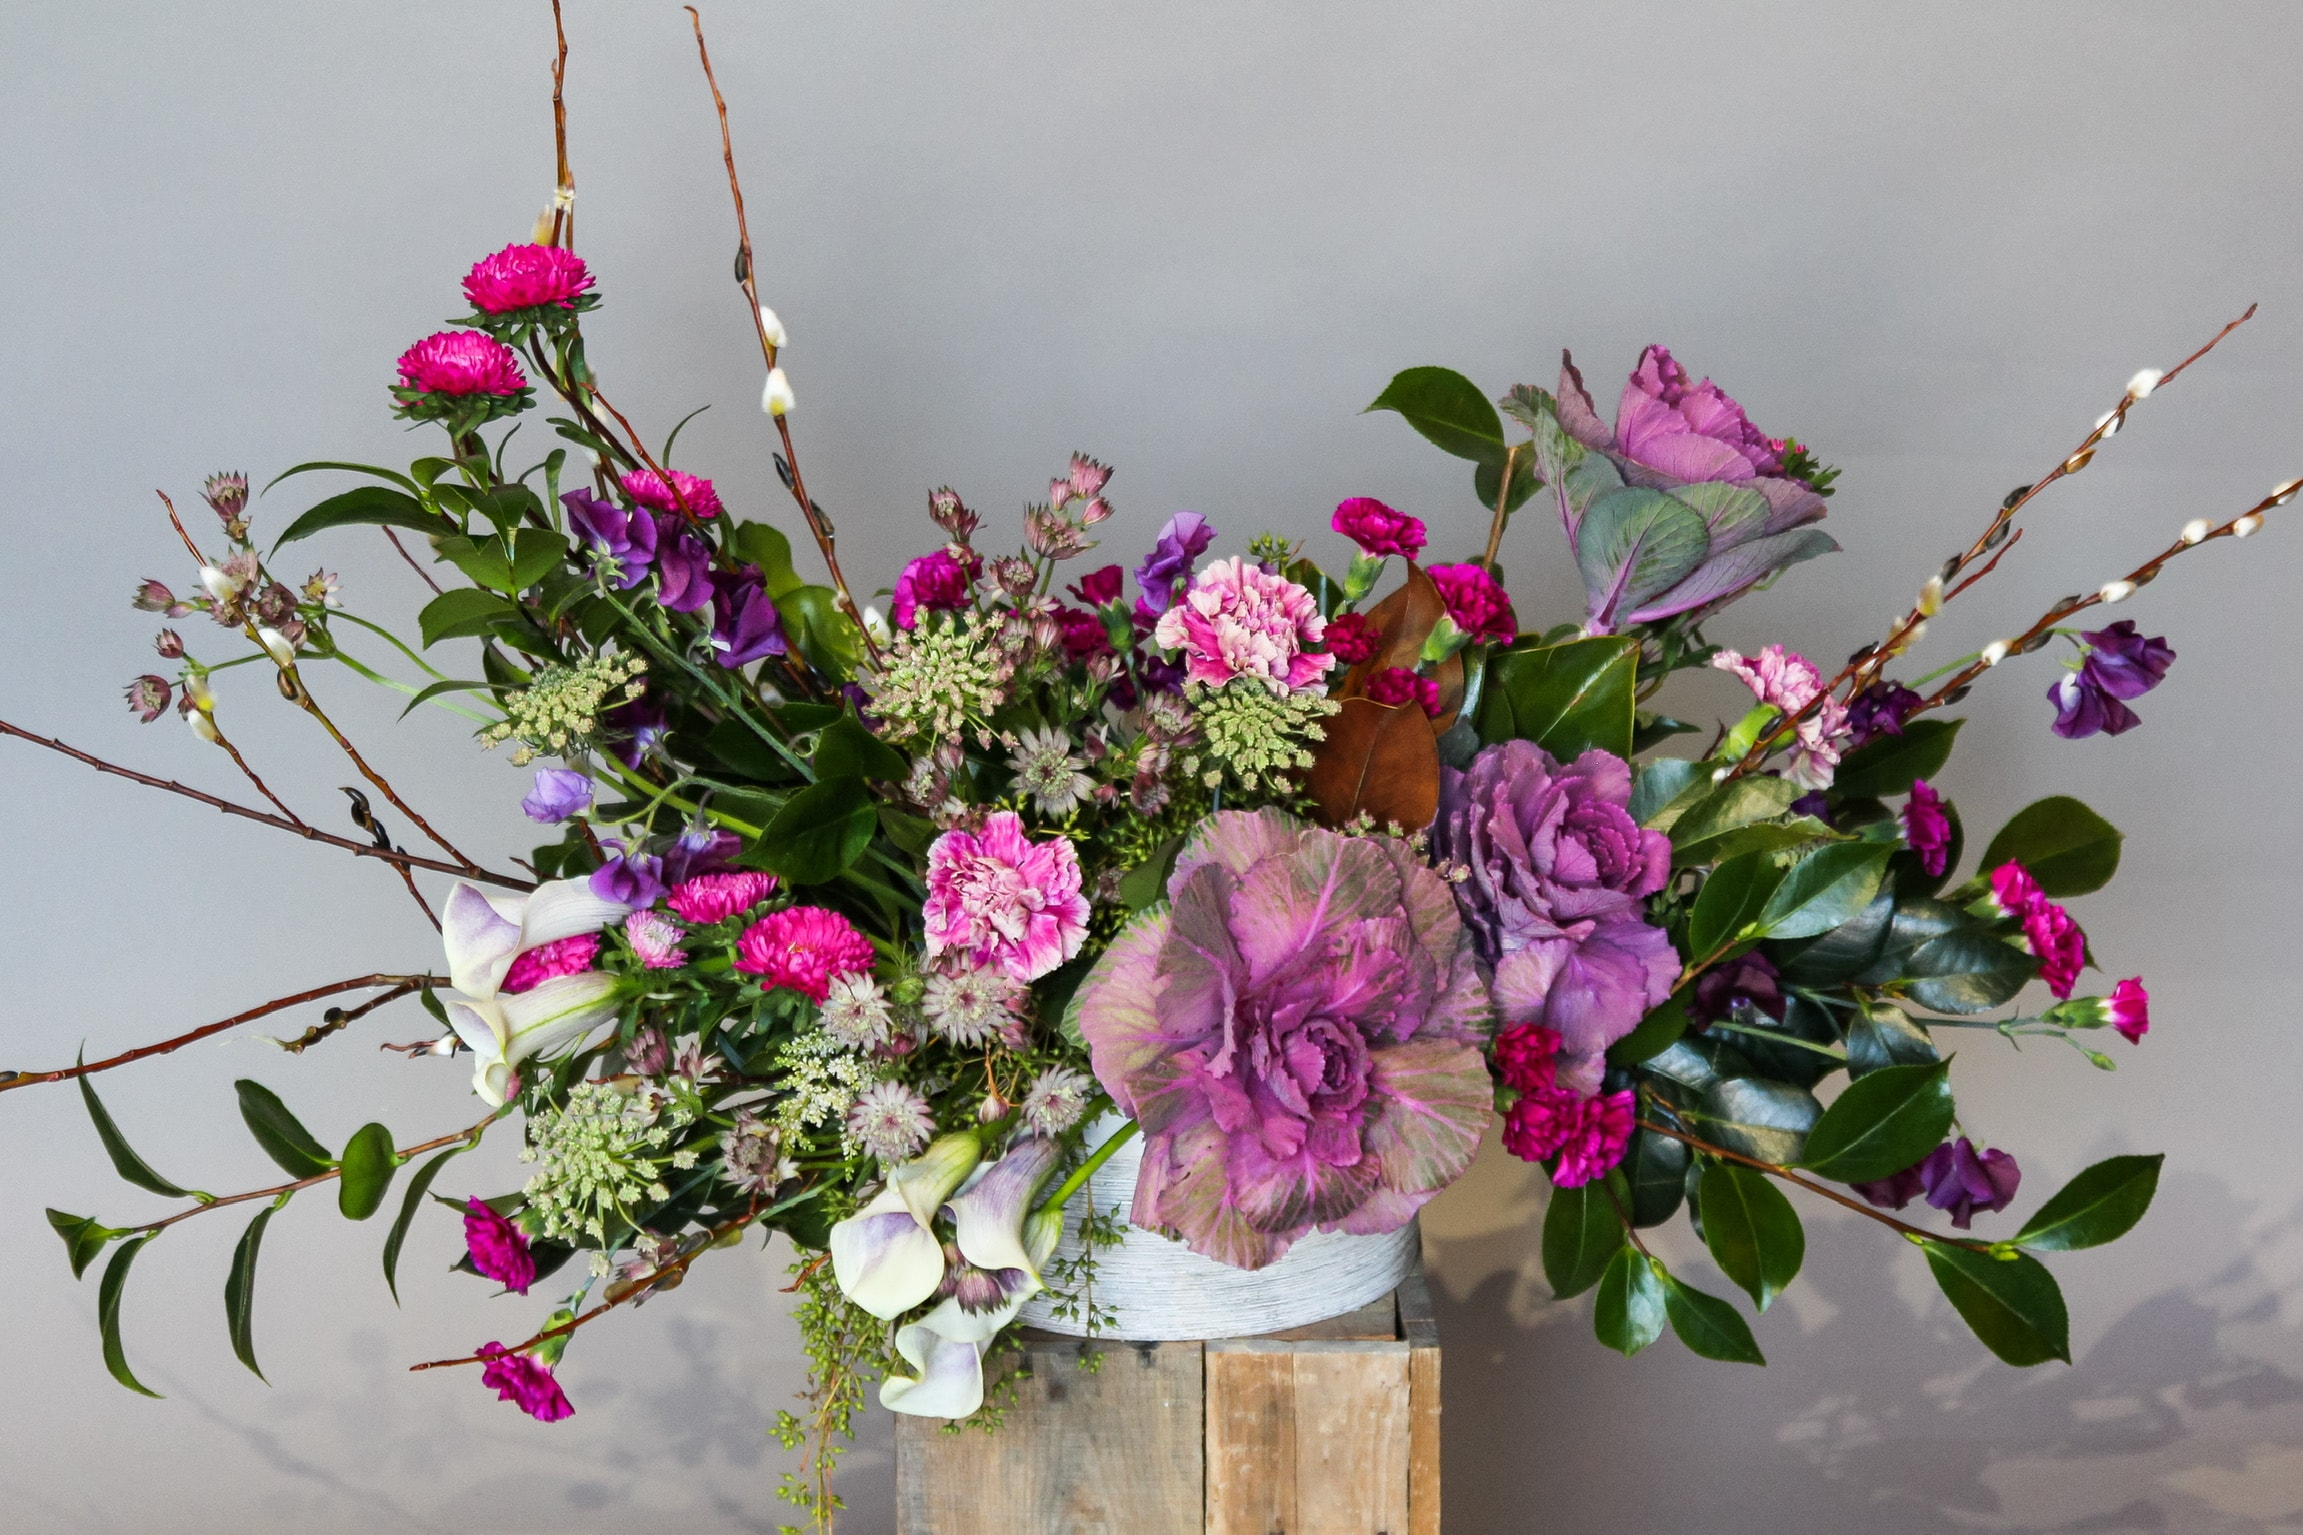 The Romantic Era Flower Arrangement